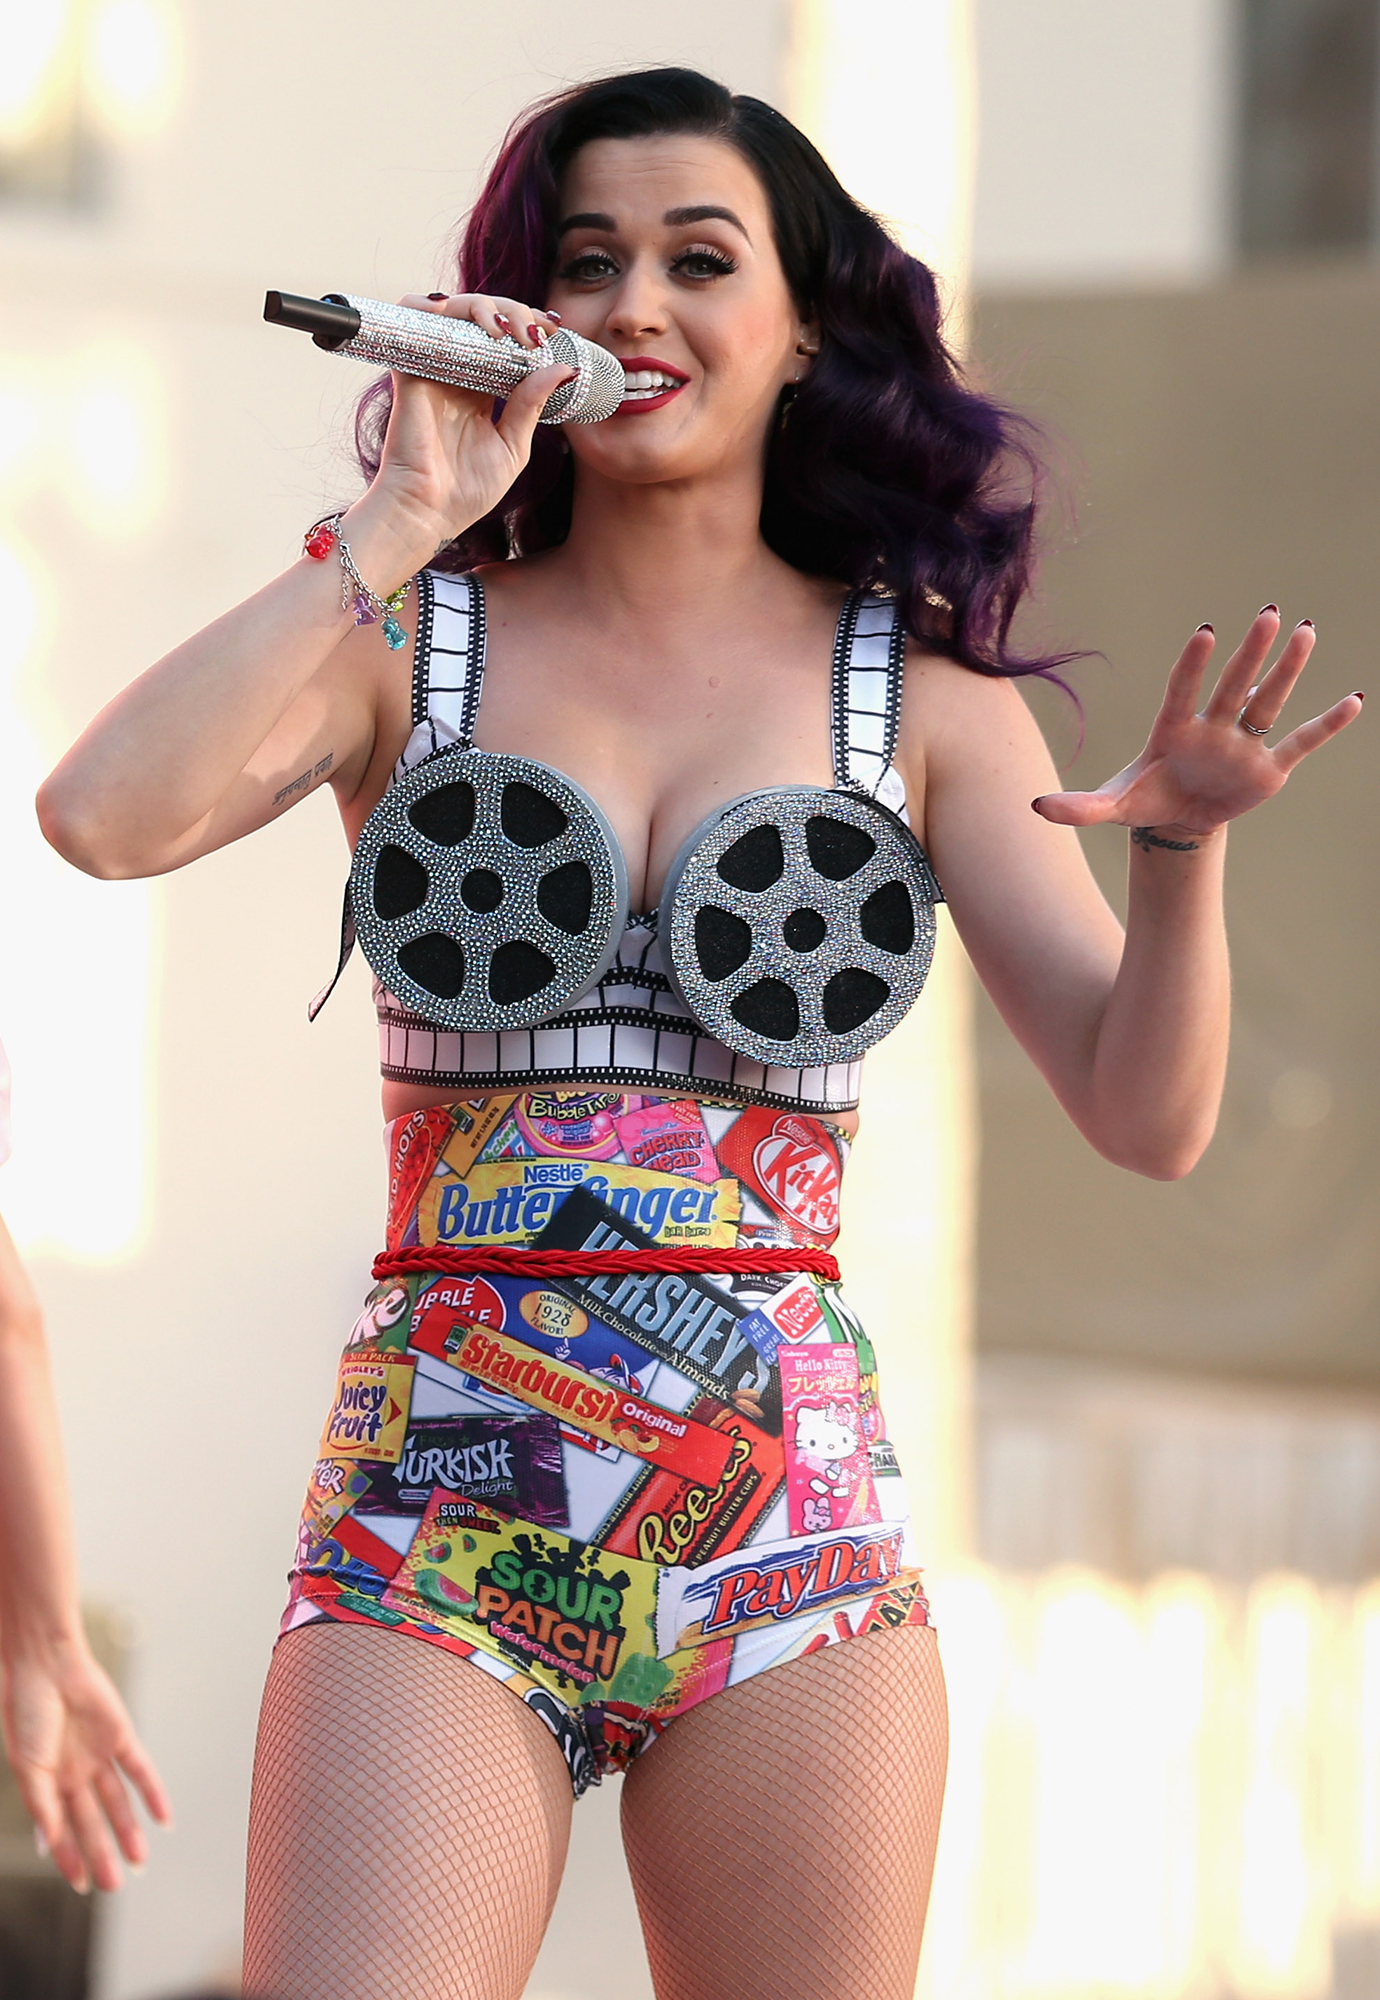 Katy Perry Dressed as Food - In addition to the popcorn outfit, Perry also wore an ensemble that was partially made out of various candy wrappers while strutting her stuff on stage in Hollywood in 2012.